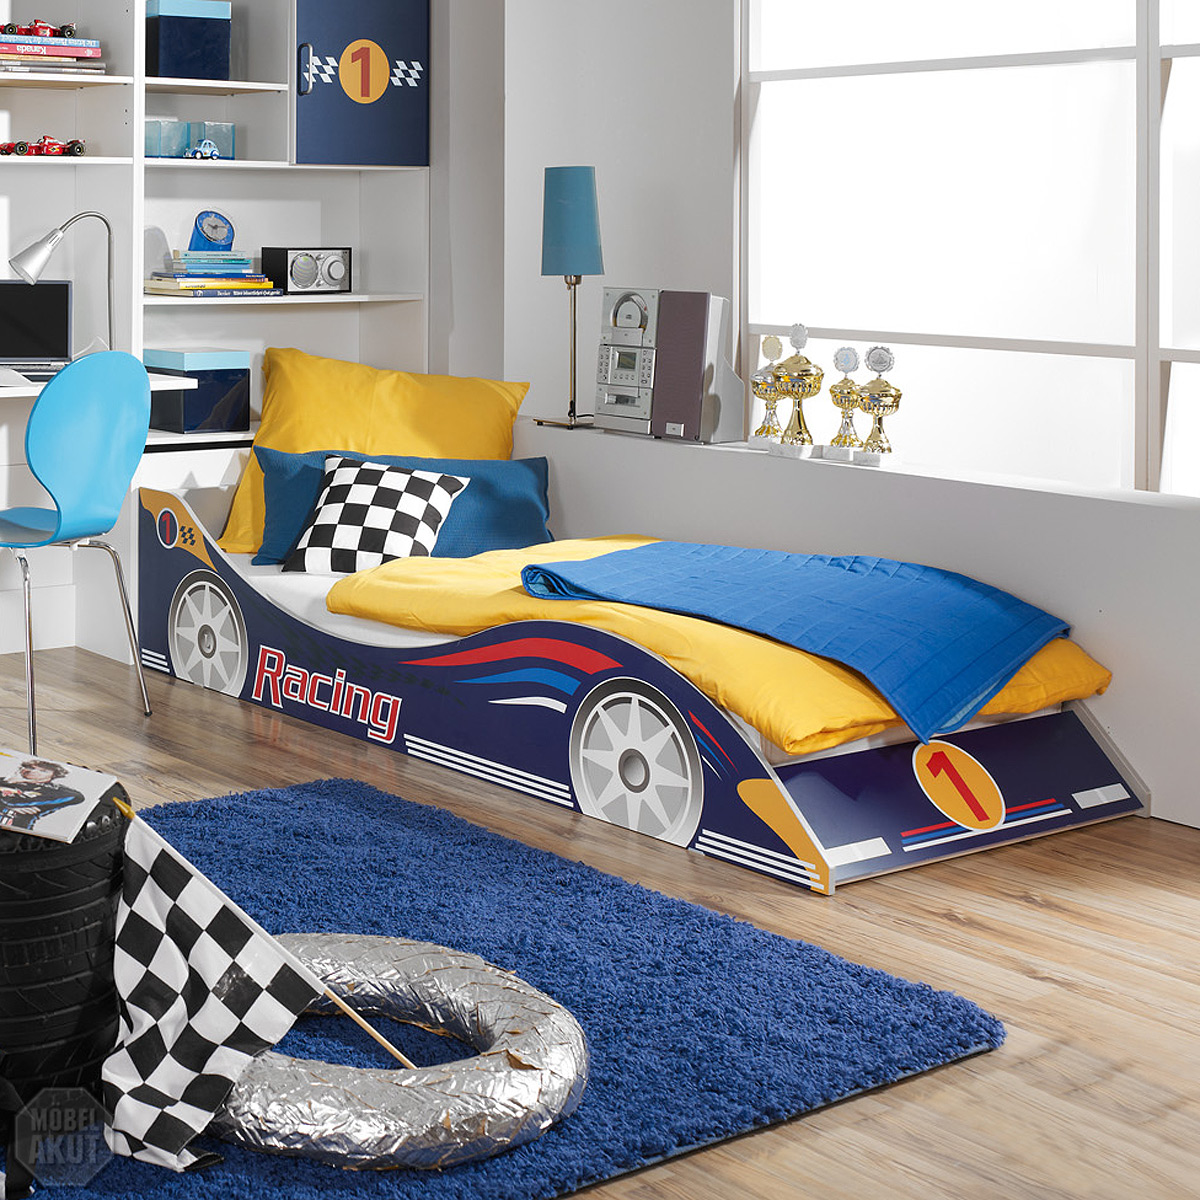 kinderbett racing autobett bett f r kinderzimmer in blau 90x200 cm ebay. Black Bedroom Furniture Sets. Home Design Ideas